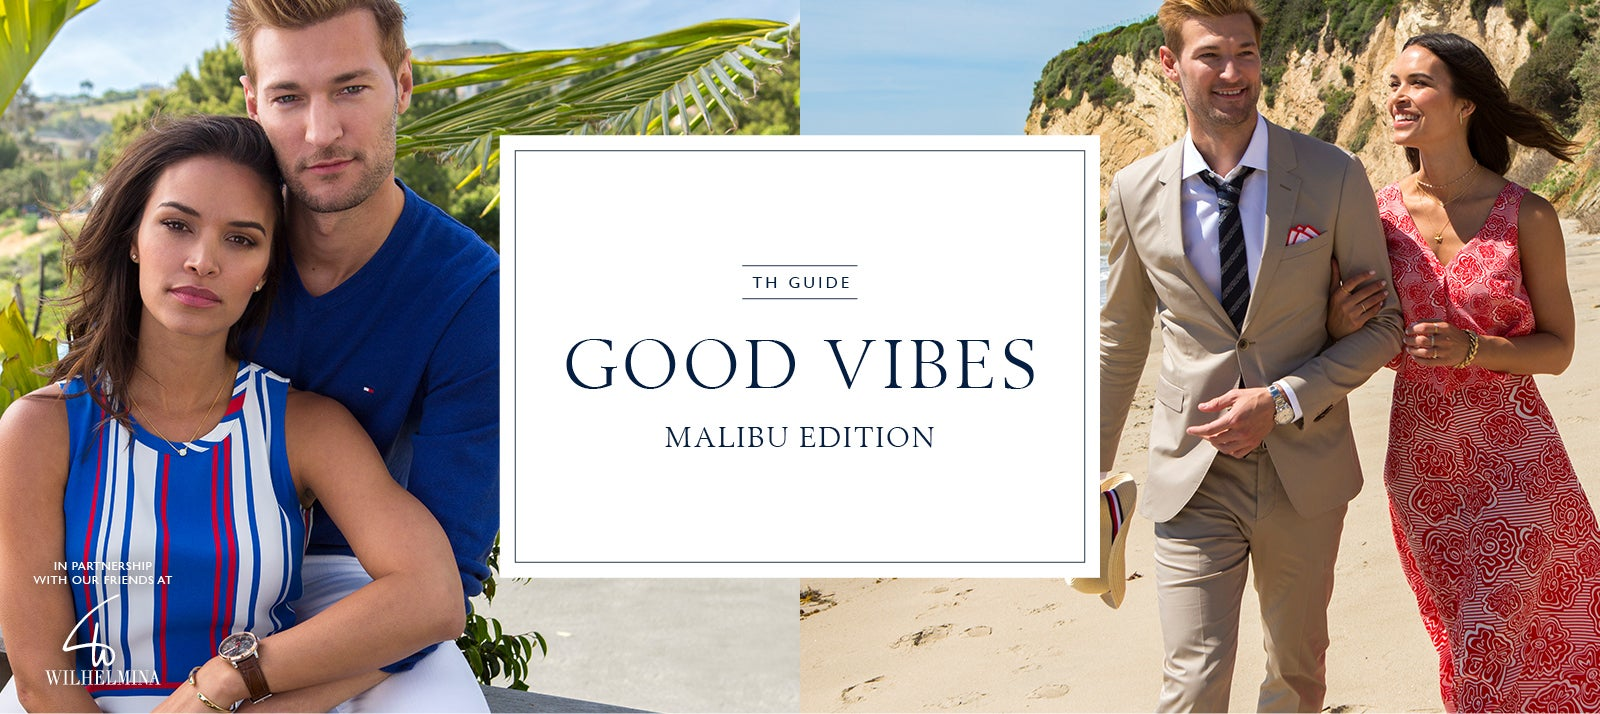 Male and female model on the beach wearing Tommy Hilfiger in two photos- casual apparel in one, more formal in the second.